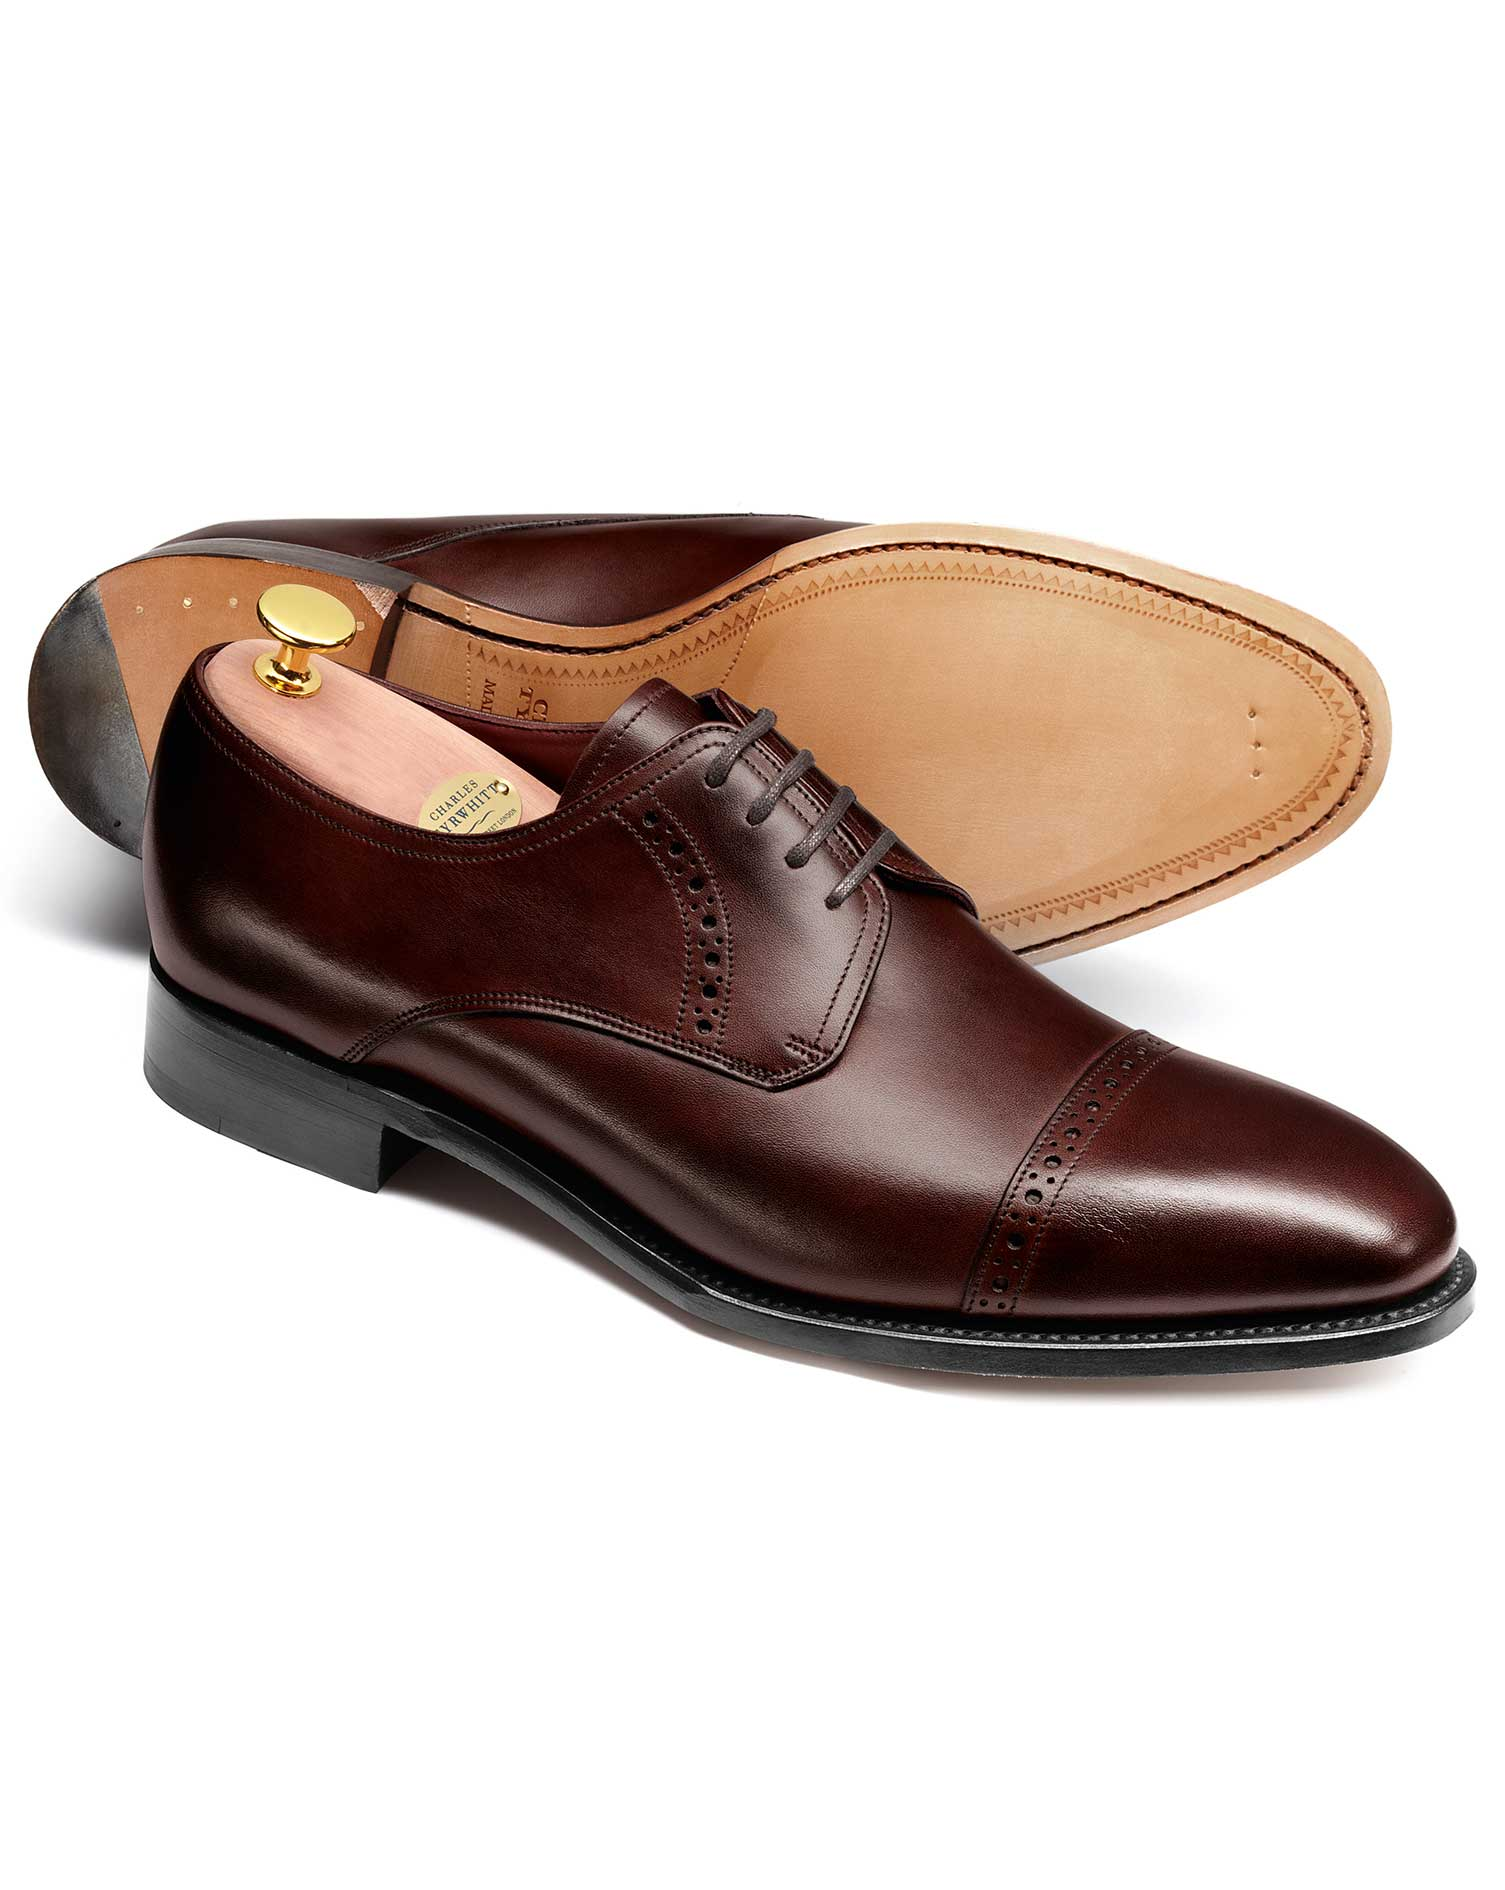 Brown Hallworthy Calf Leather Toe Cap Brogue Derby Shoes Size 11 W by Charles Tyrwhitt